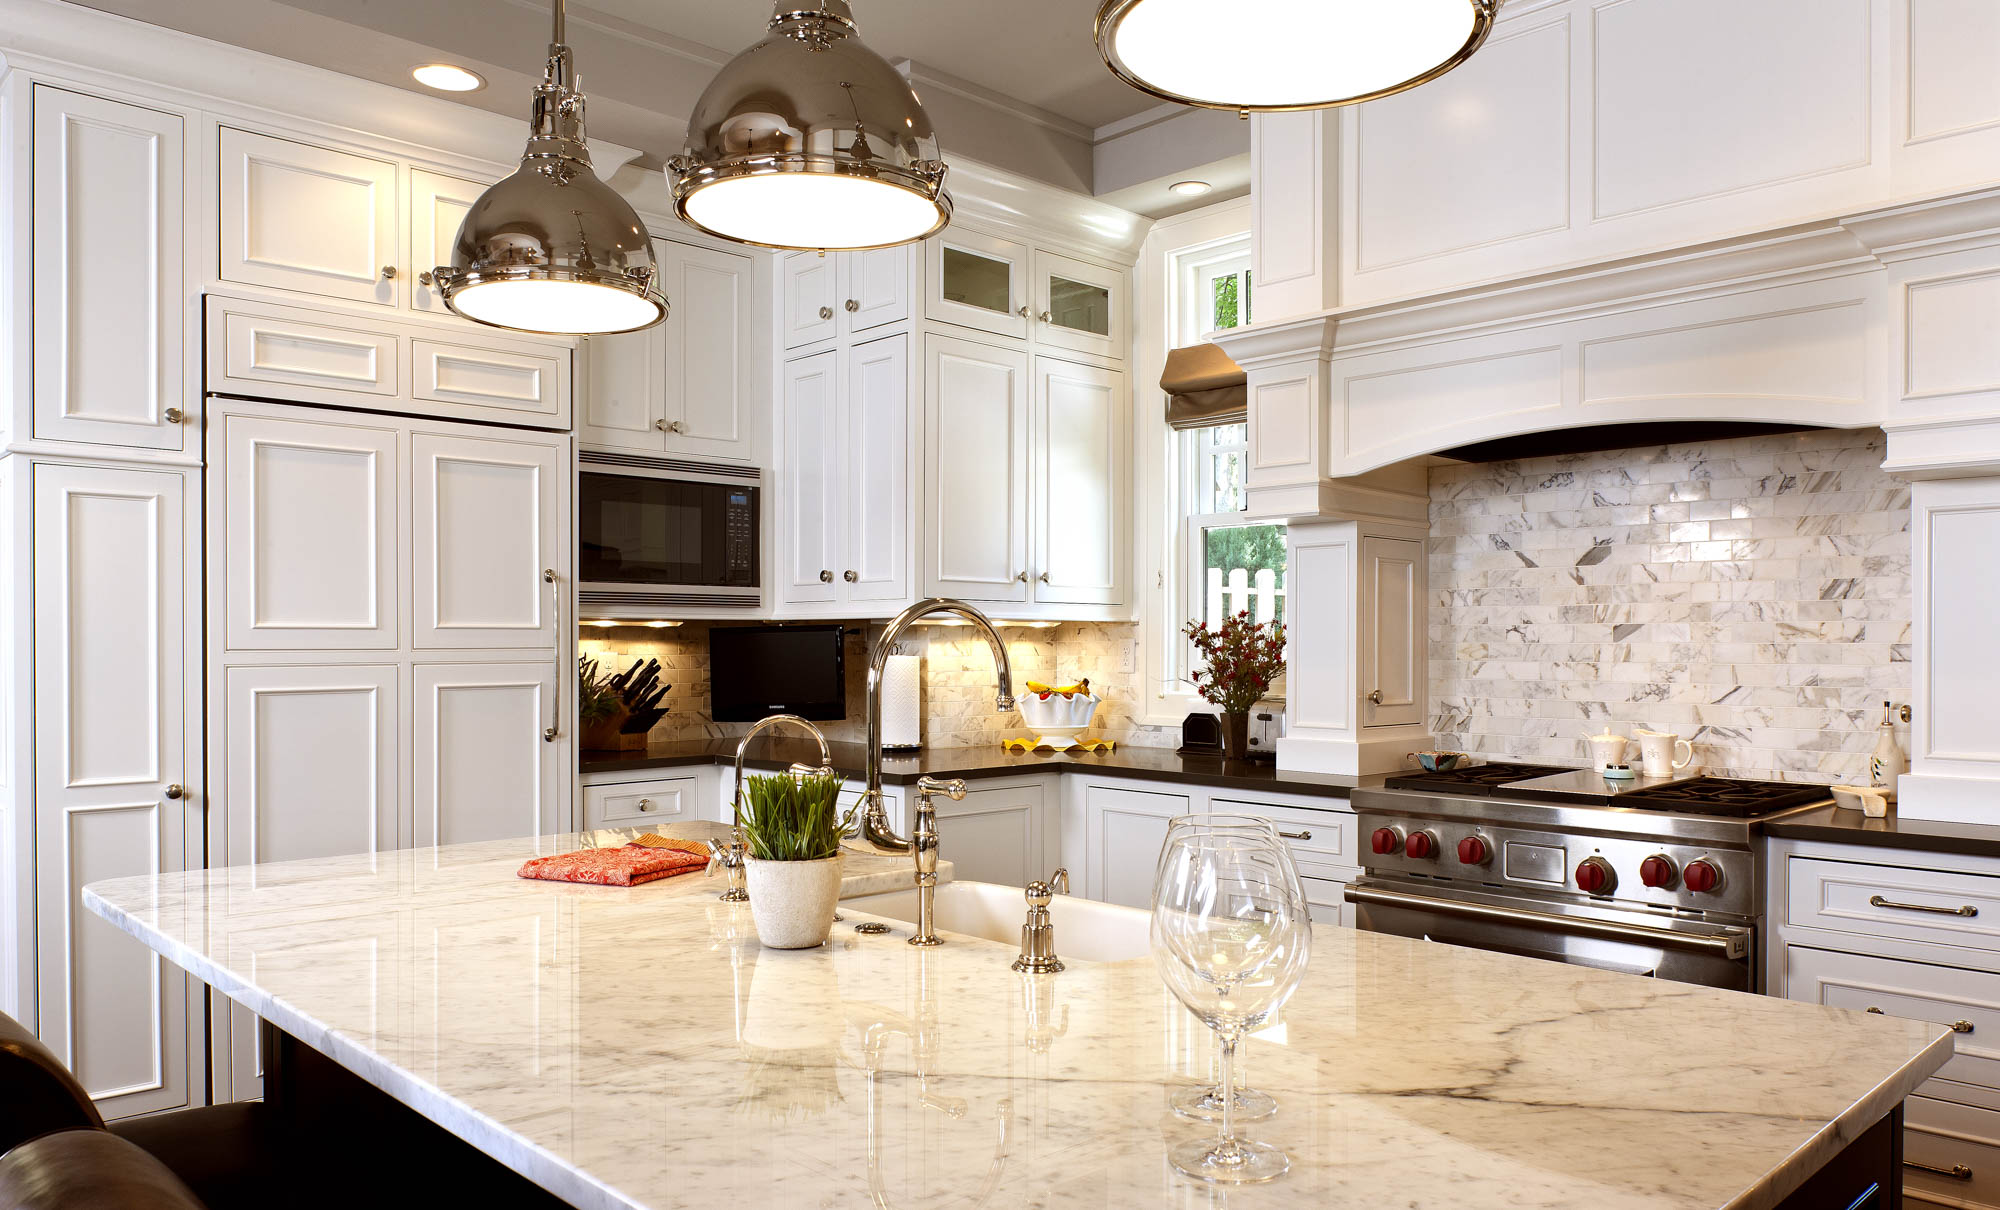 Painted Kitchen Cabinets In White By Showplace Cabinetry   View 3